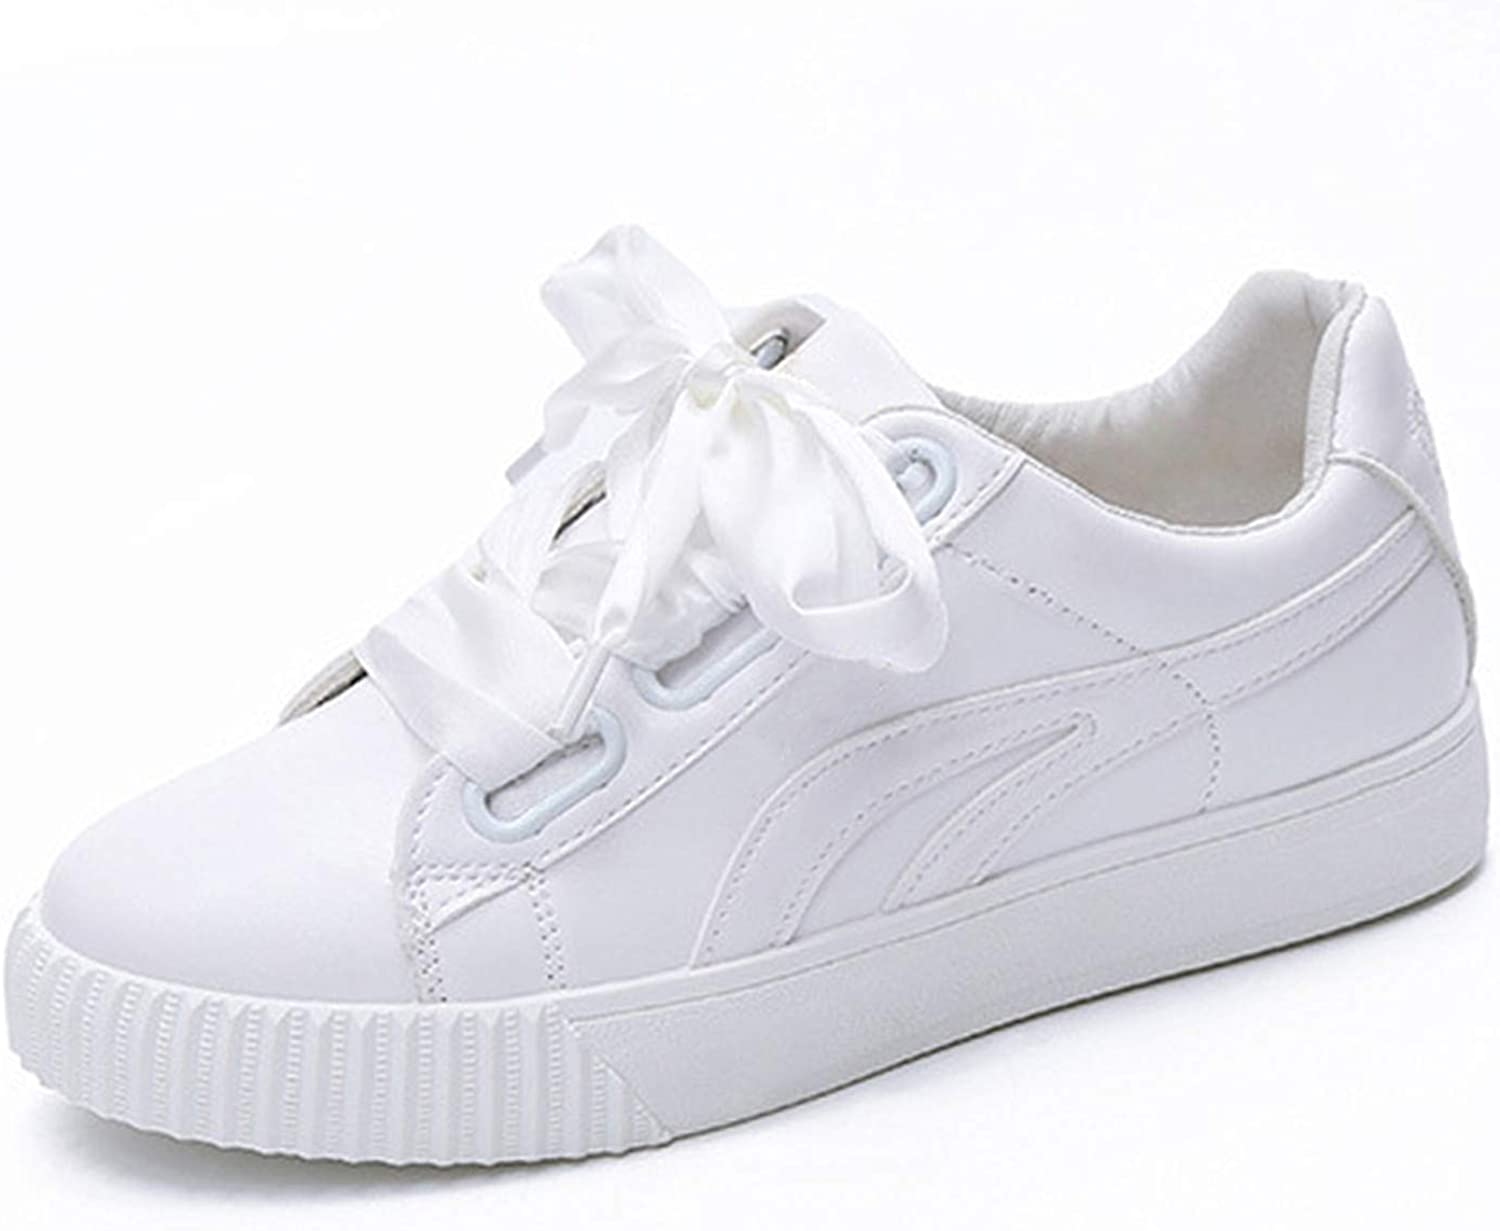 Carolyn Jones Women Sneakers Ribbon Vulcanized shoes Platform Casual Flats Lace Up Sewing Ladies Footwear White 6